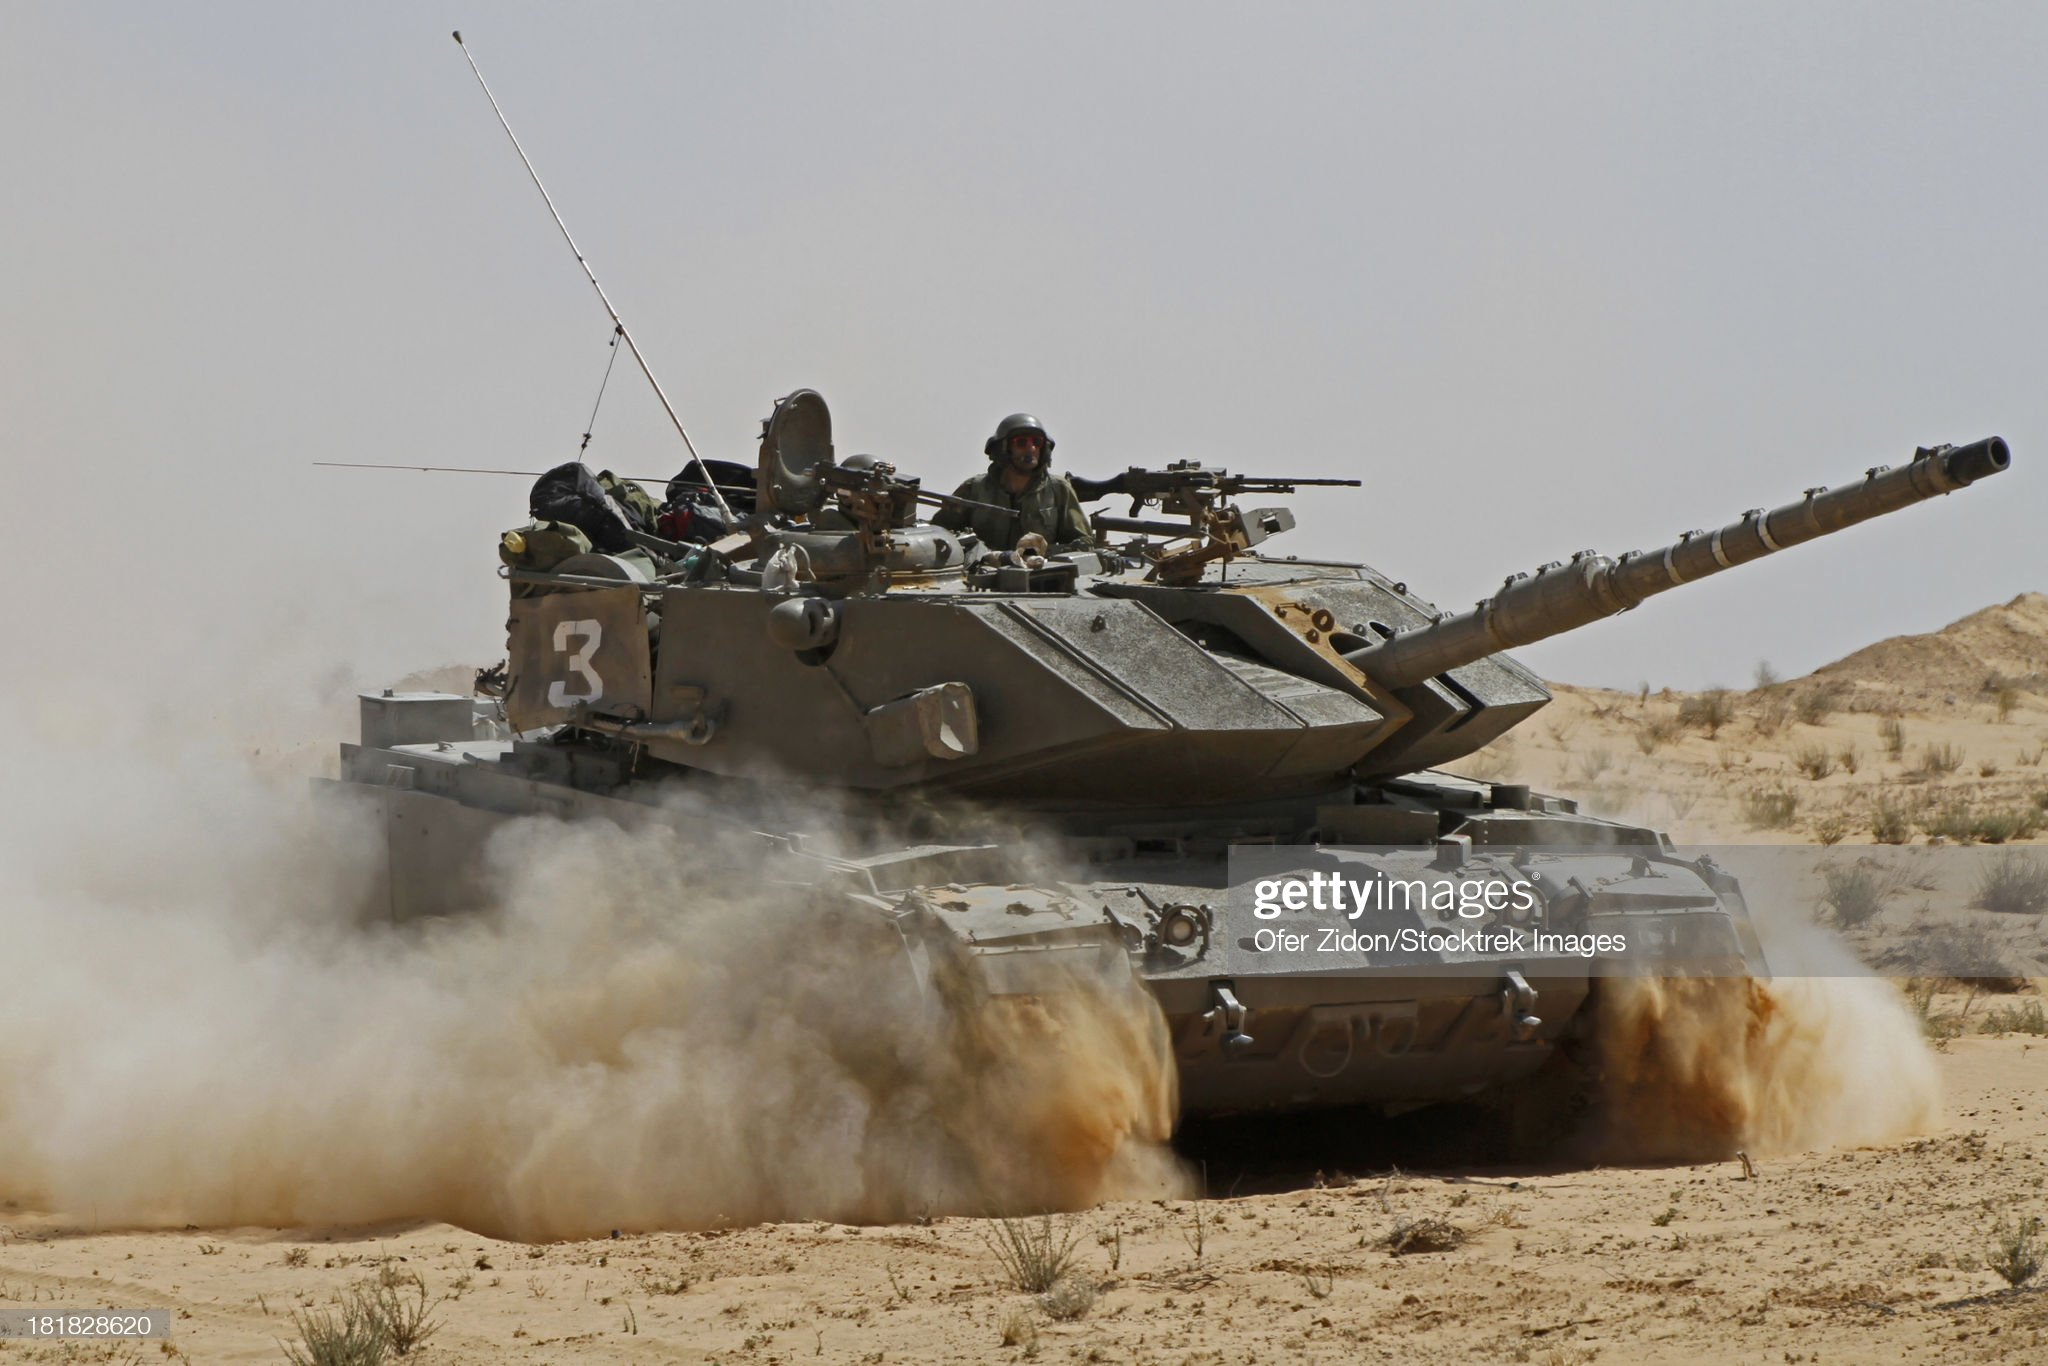 https://media.gettyimages.com/photos/an-israel-defense-force-magach-7-main-battle-tank-during-an-exercise-picture-id181828620?s=2048x2048